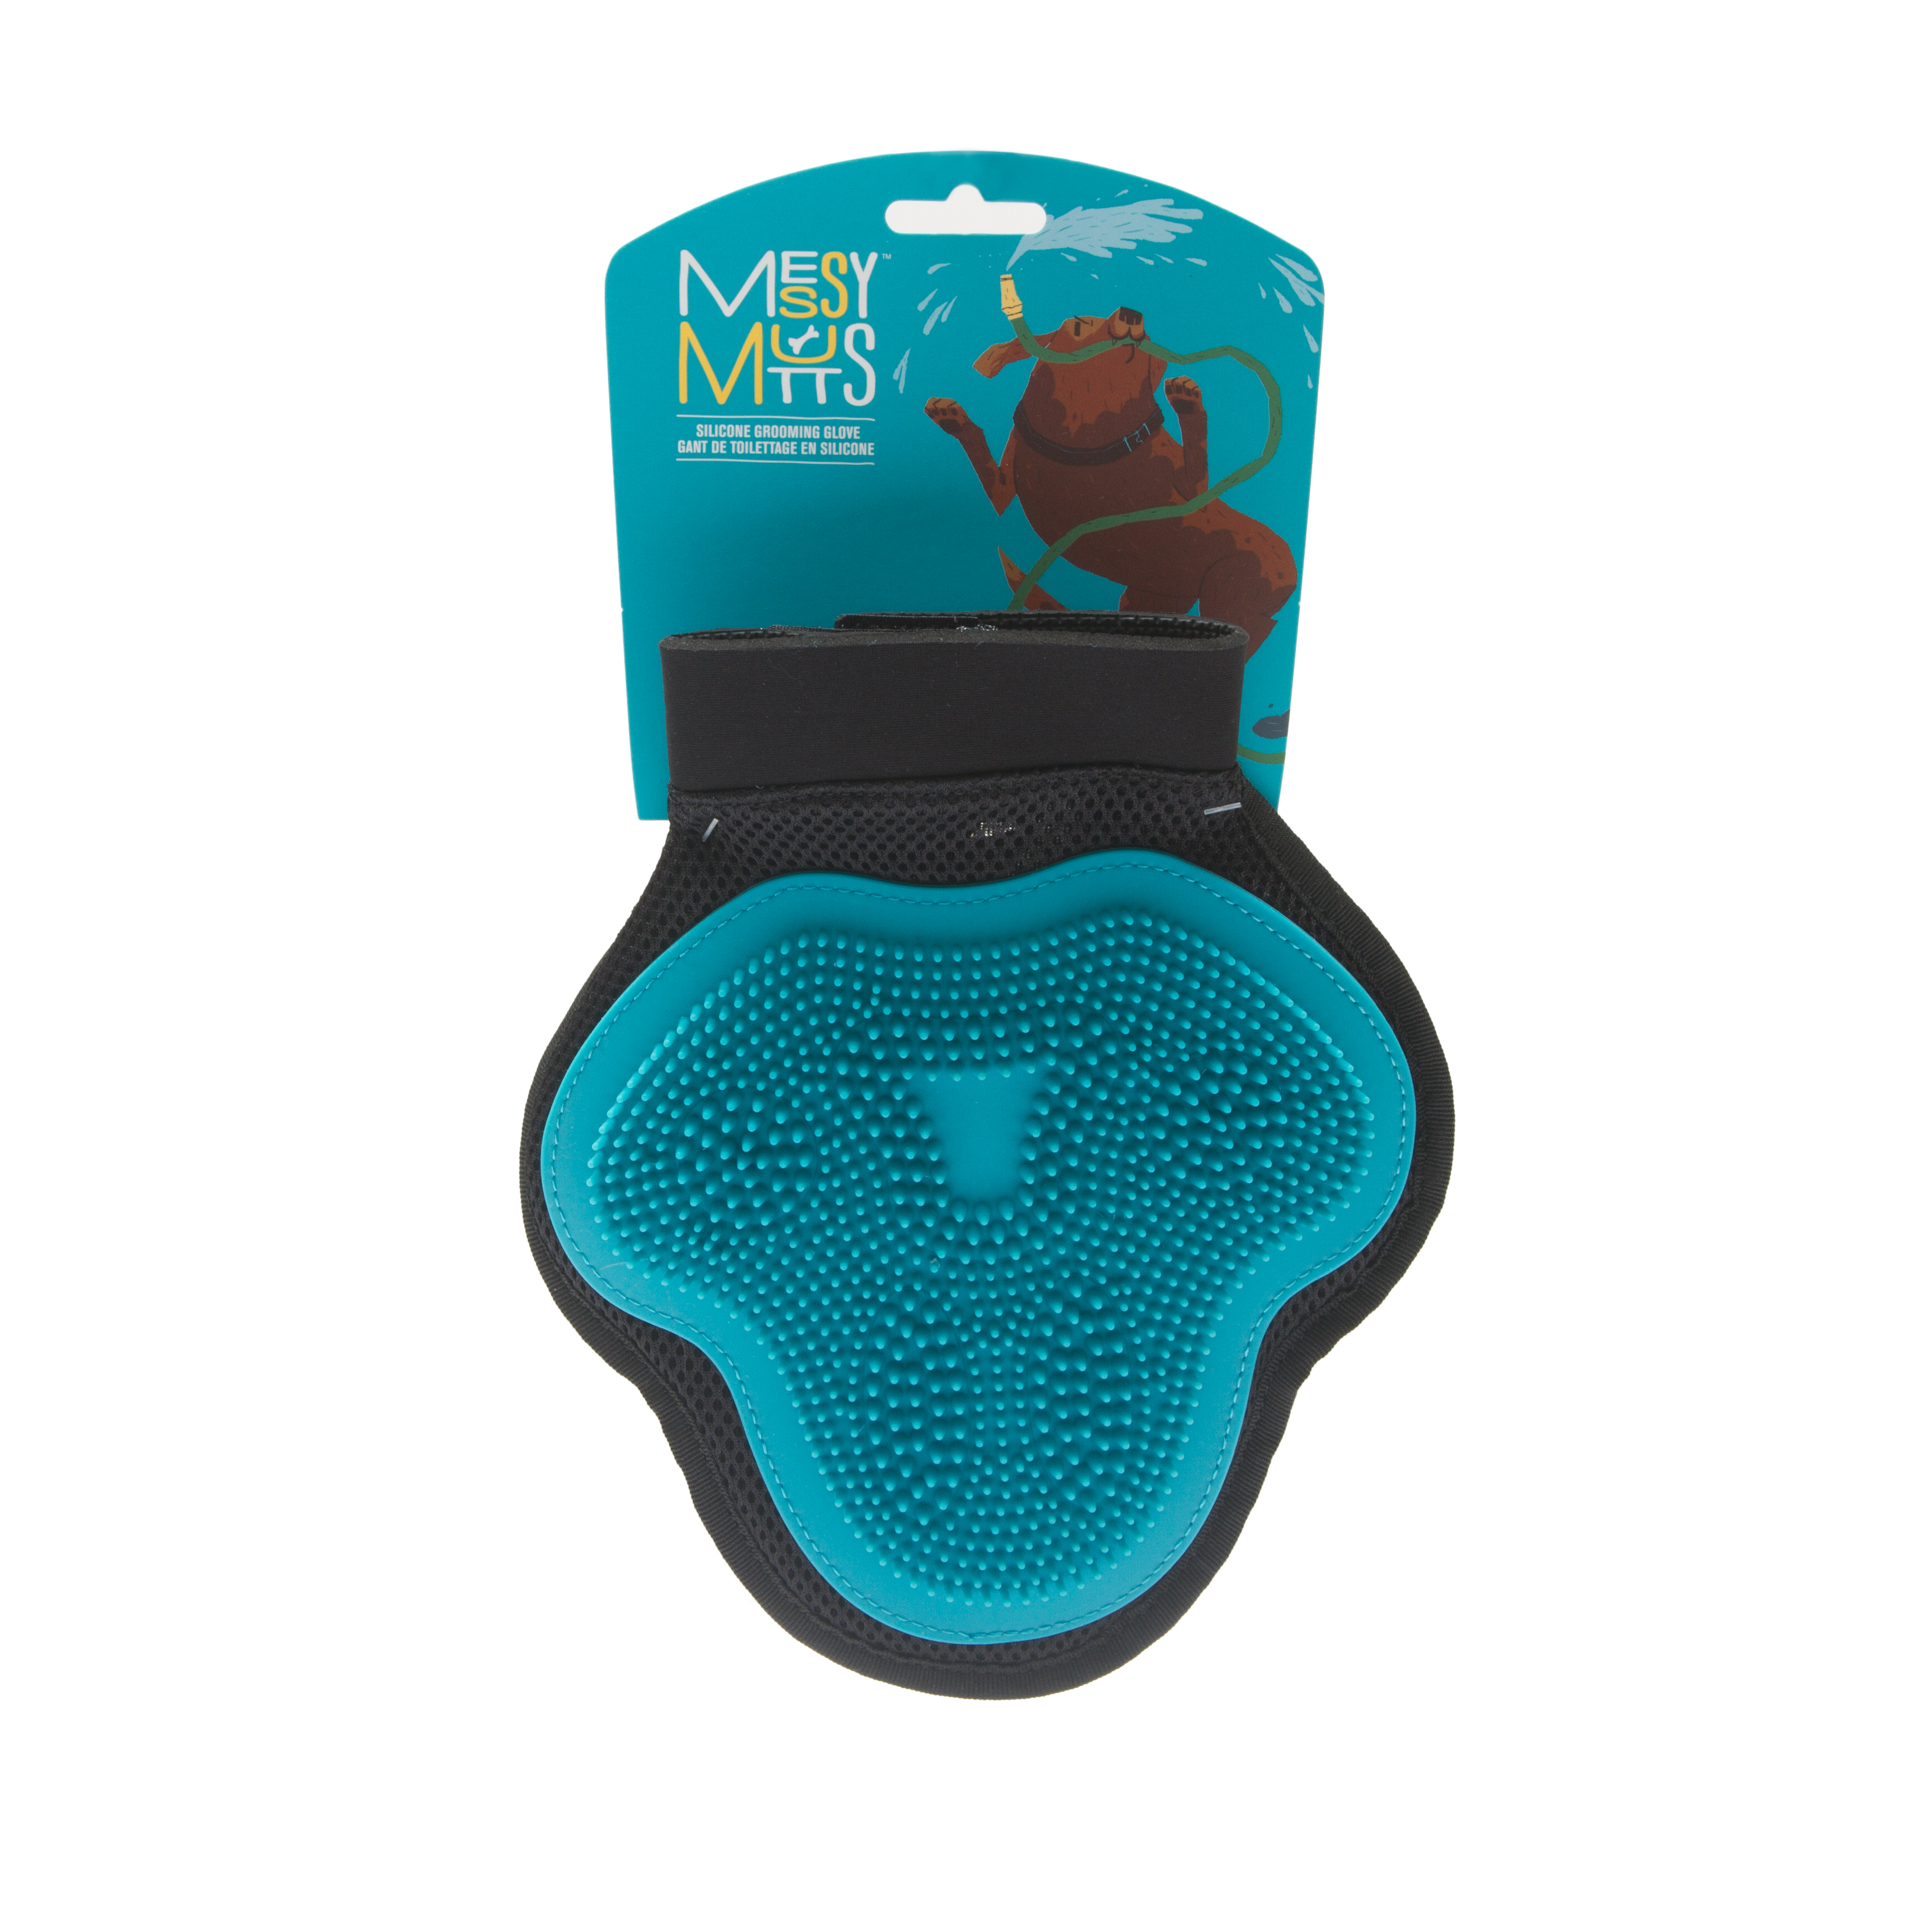 Messy Mutts Silicone Grooming Glove, Blue Image